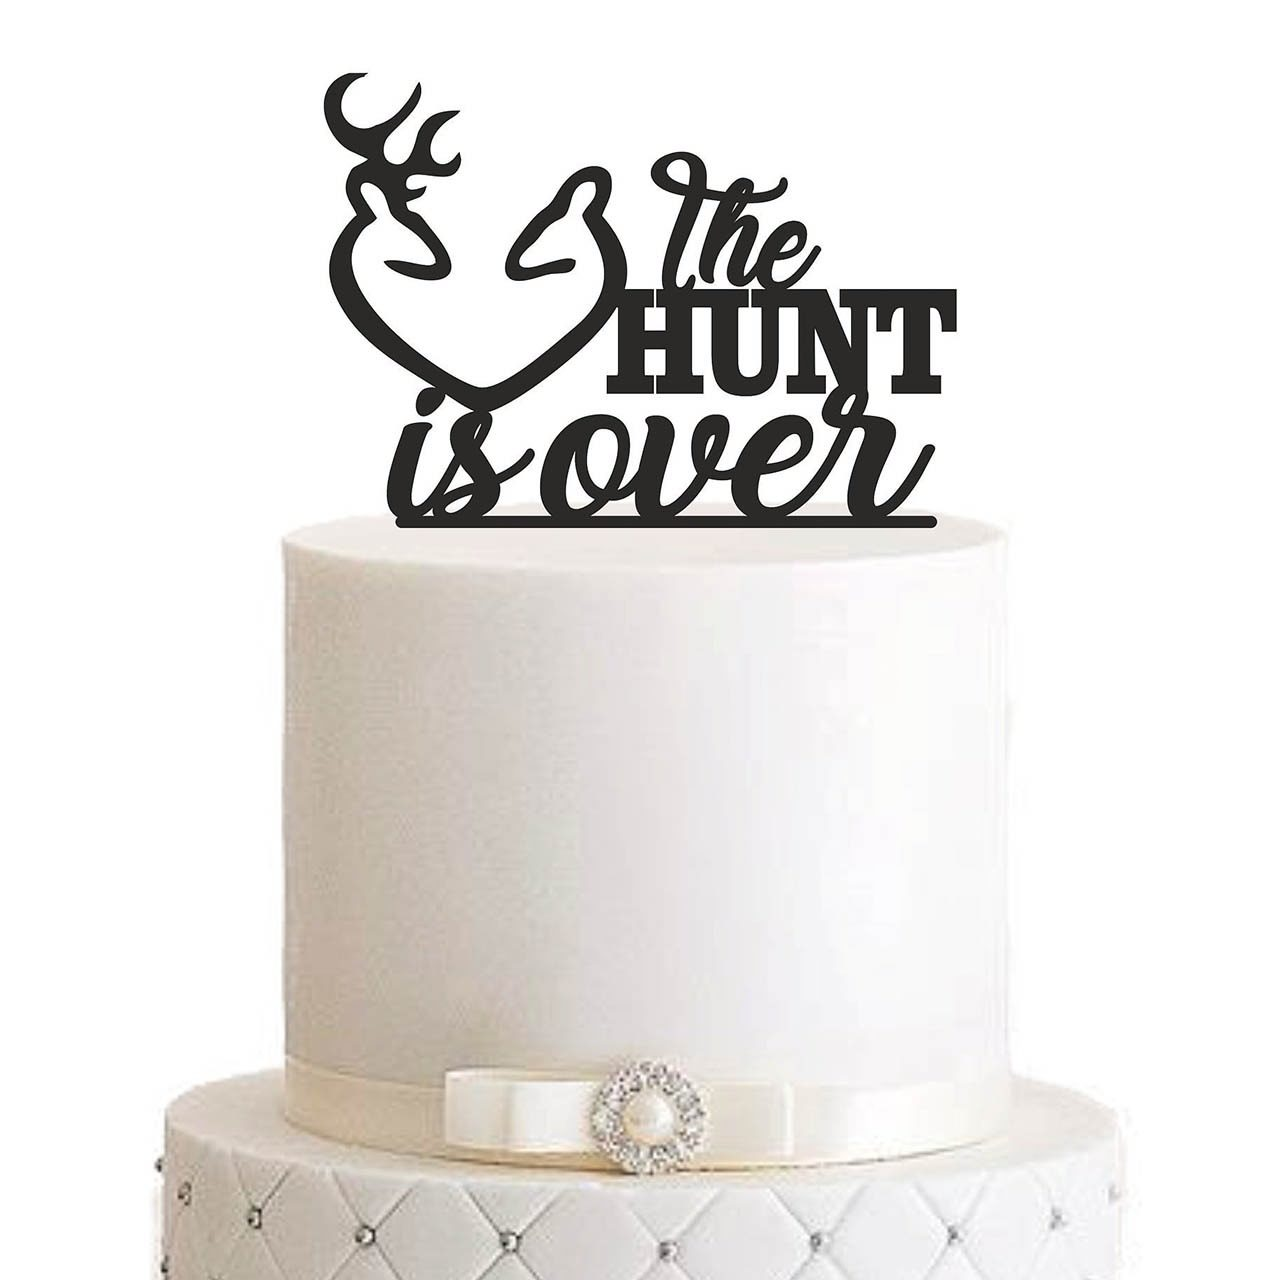 """Cake Topper """"The hunt is over"""""""